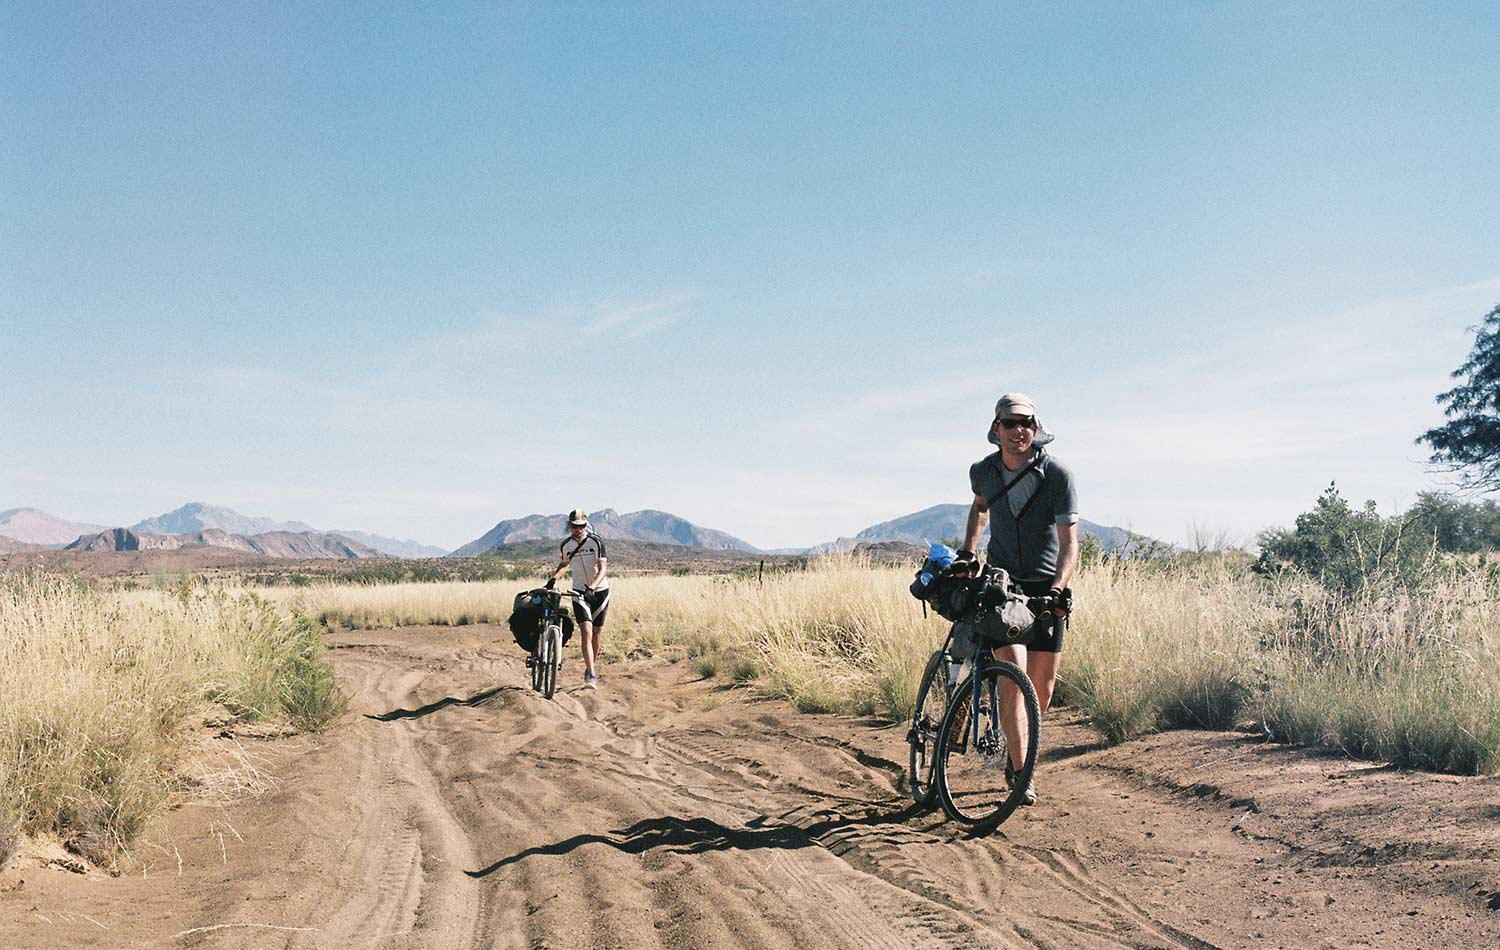 expert advice for travelling by bike and how to manage visas